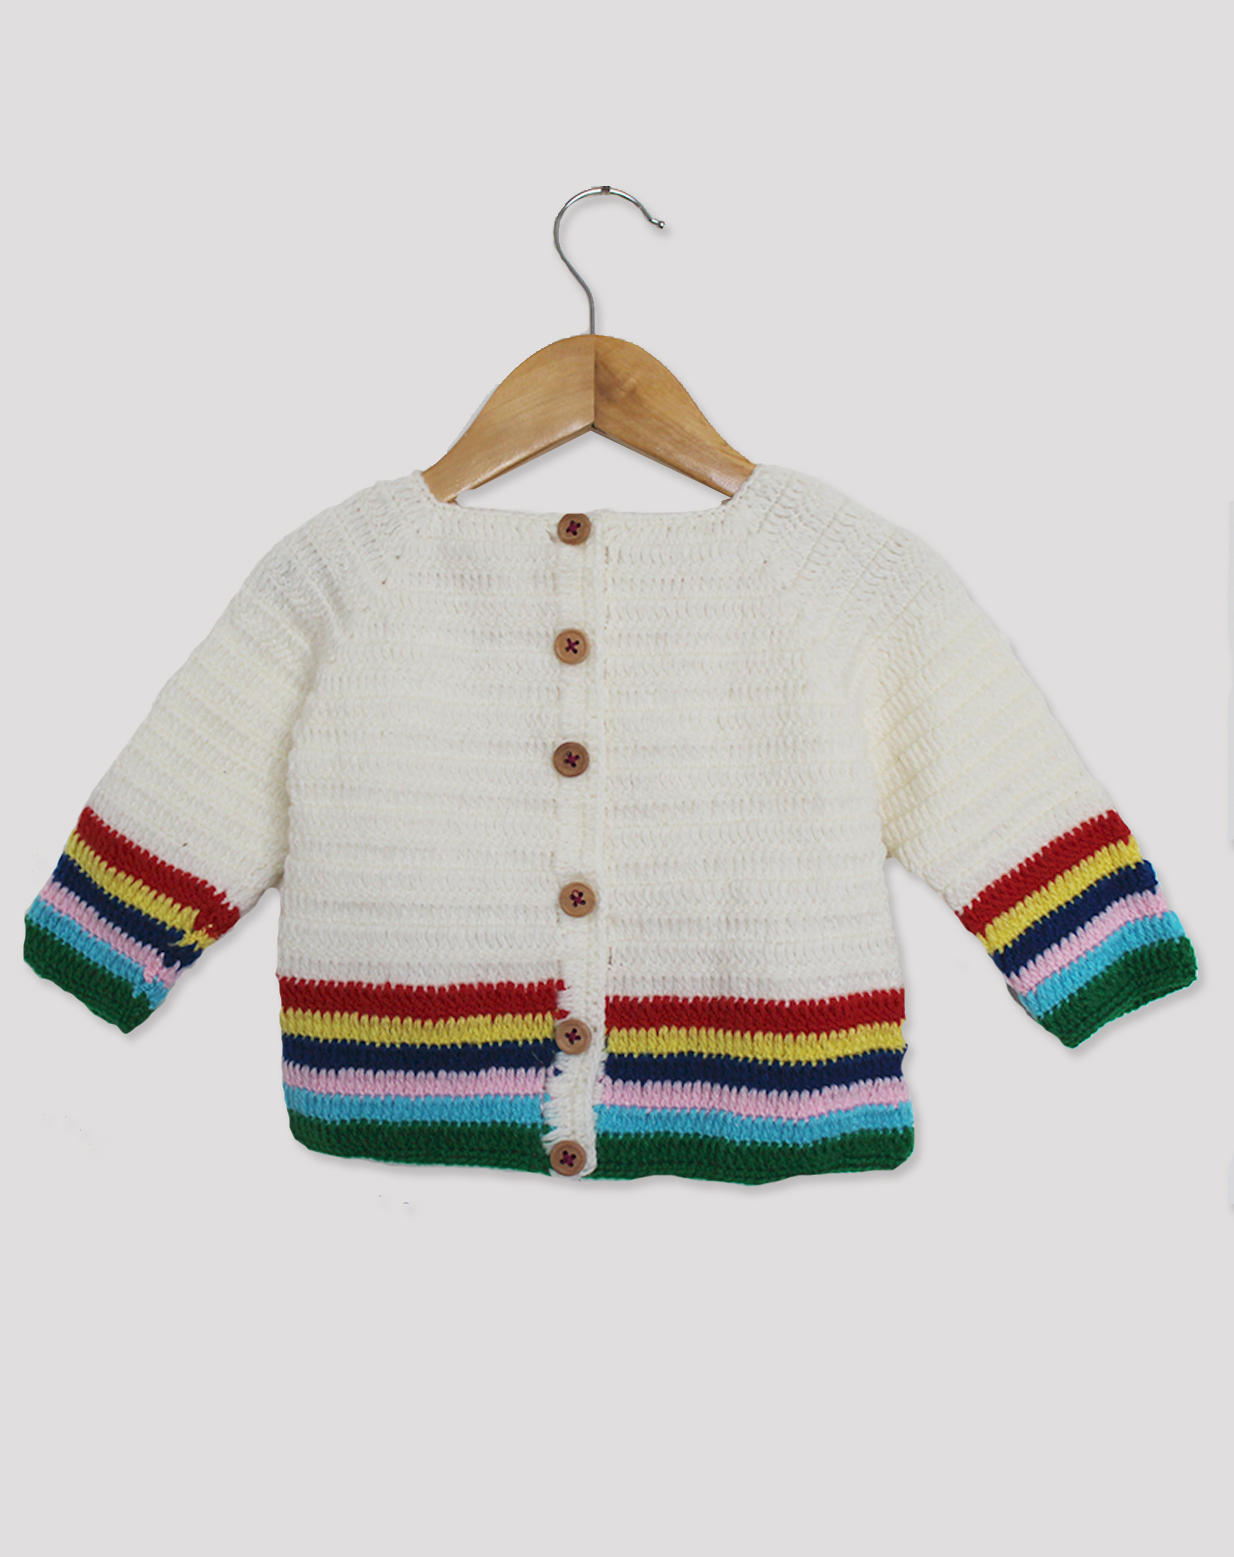 Woonie Handmade Multicolored Striped Sweater for Kids